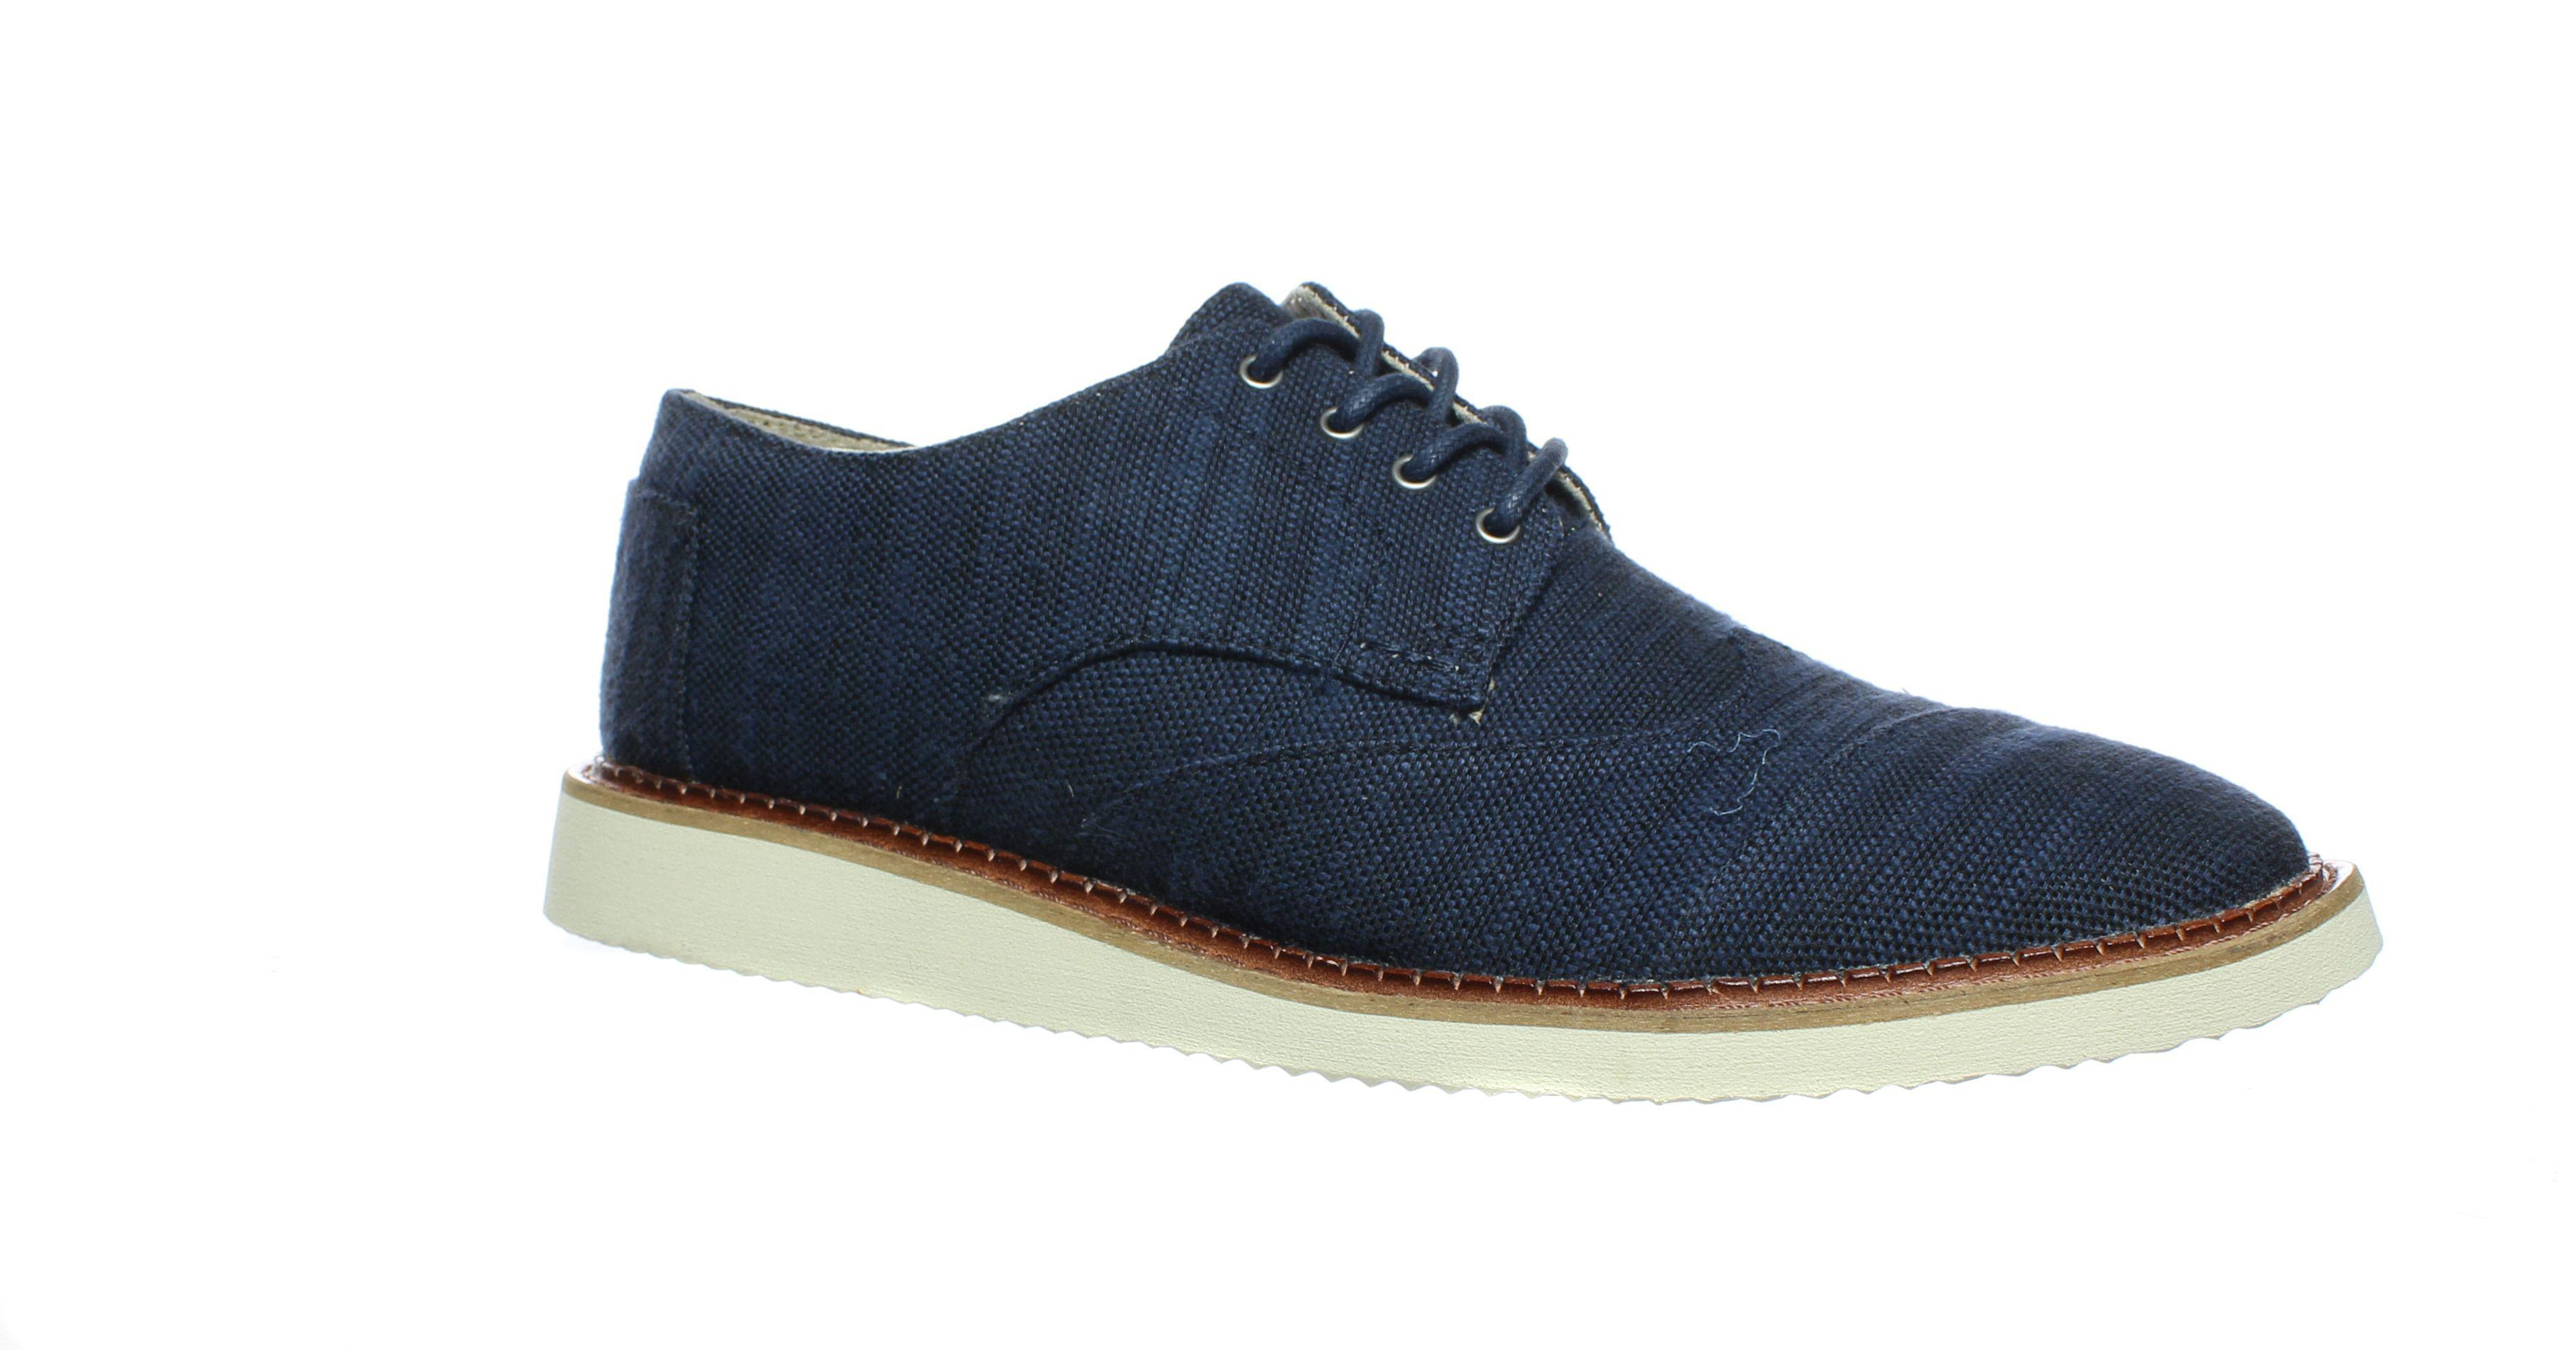 cca091b5c02 Lyst - Toms Mens Brogue Oxford Dress Shoe in Blue for Men